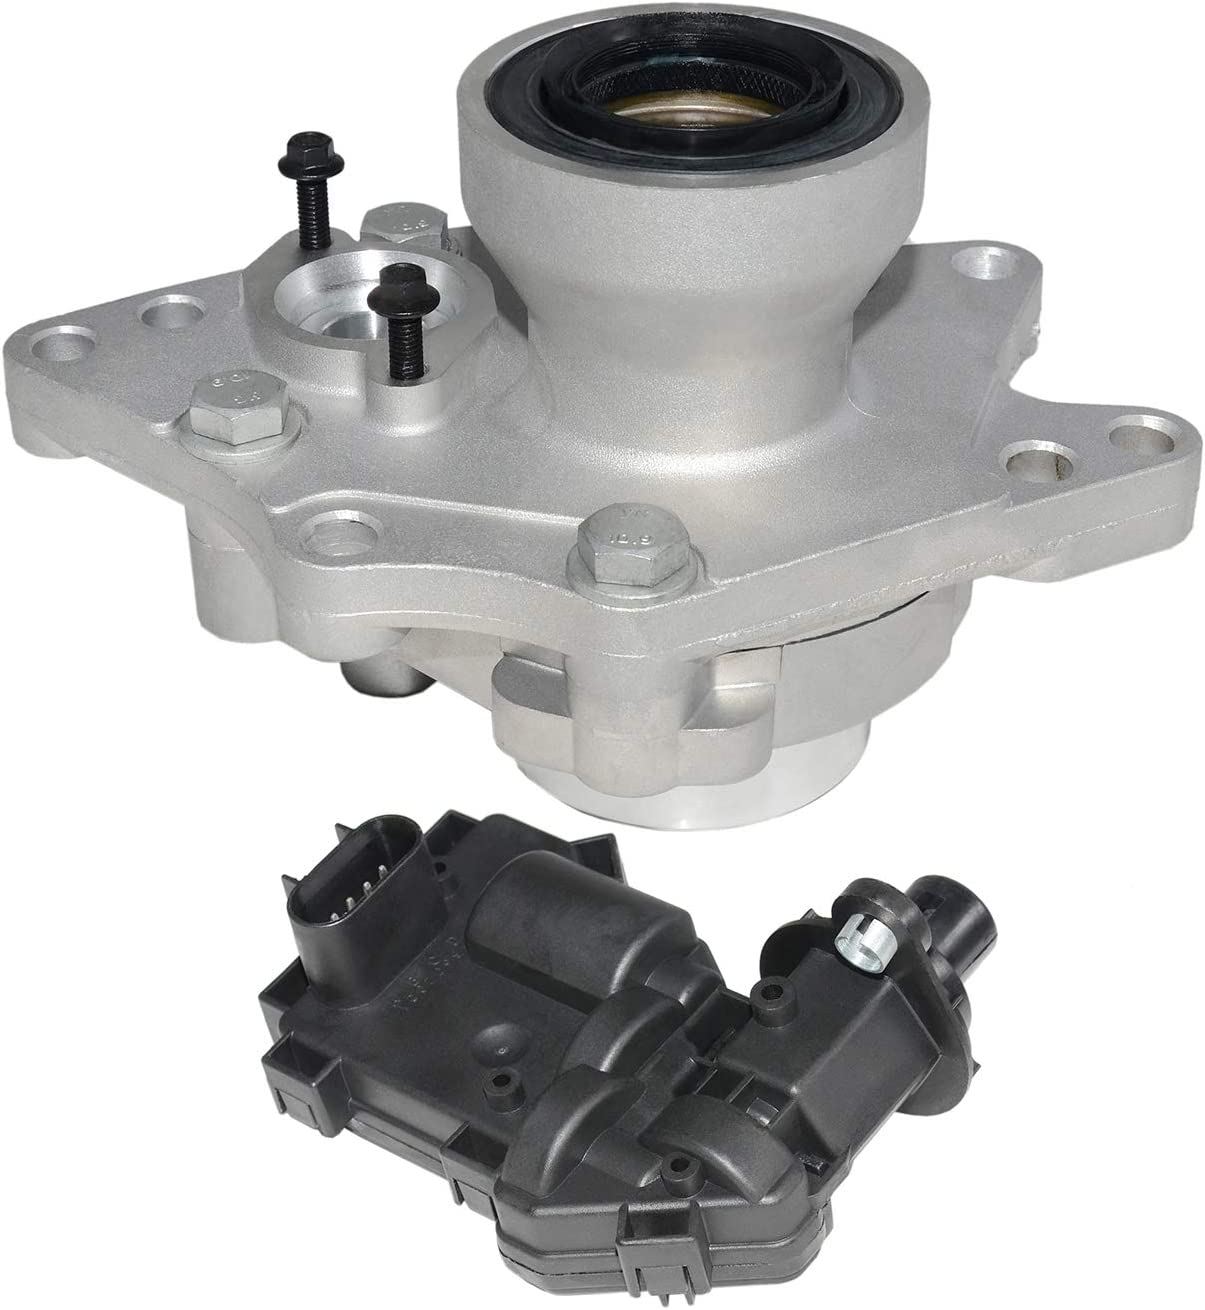 4WD Front Axle Differential Actuator and Disconnect For Chevrolet Trailblazer GMC Envoy XL XUV Isuzu Ascender Saab Buick Rainier Oldsmobile Bravada 4WD /& AWD Replace #12471623 12471631 15884292